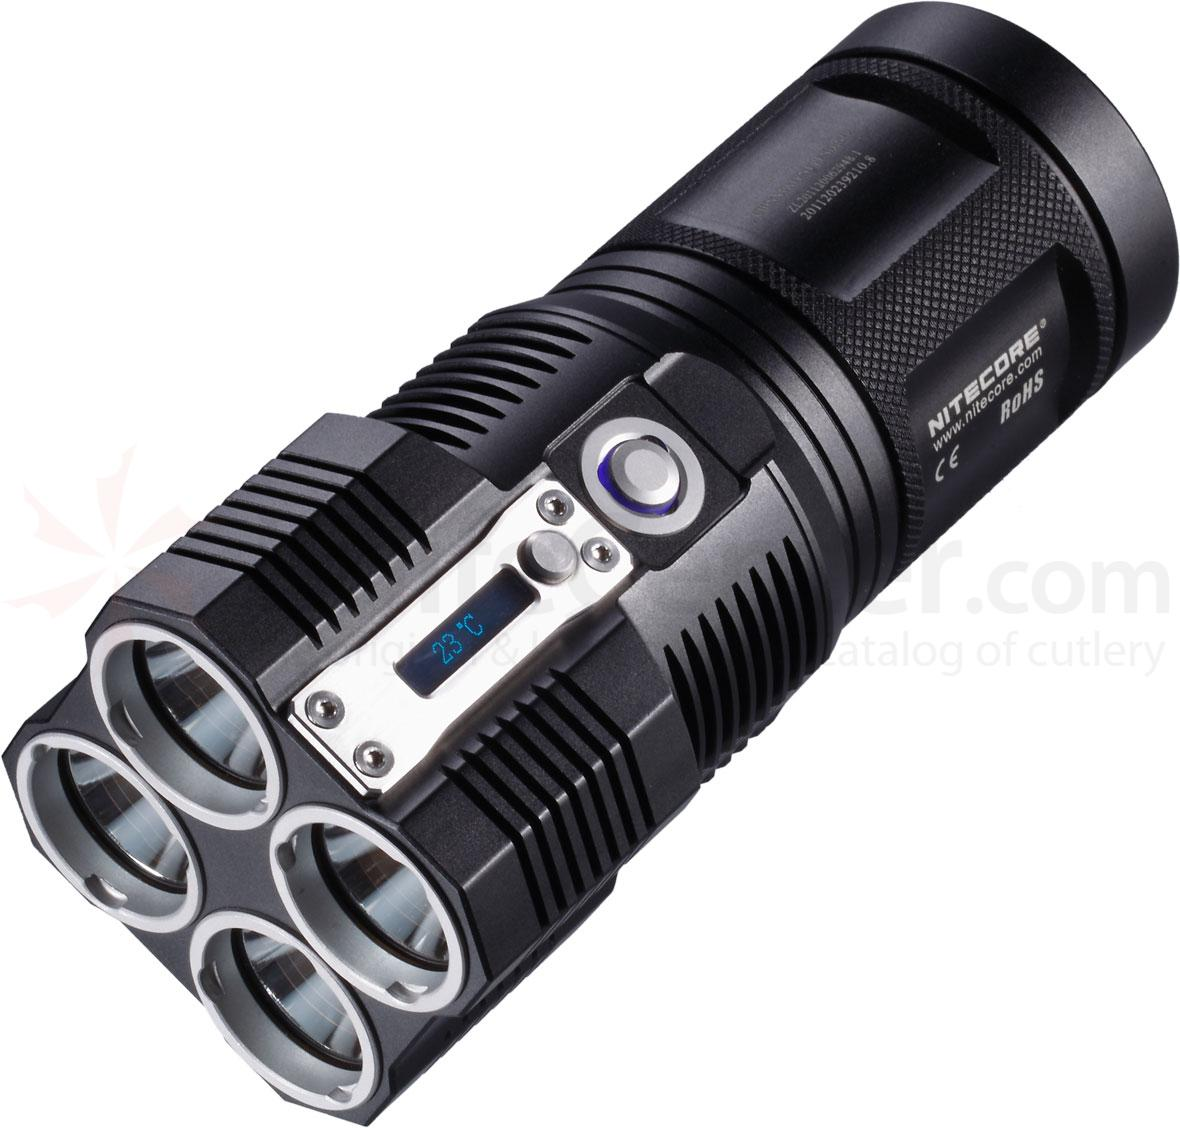 NITECORE TM26 Tiny Monster Series Rechargeable CR123A LED Flashlight, 3500 Max Lumens